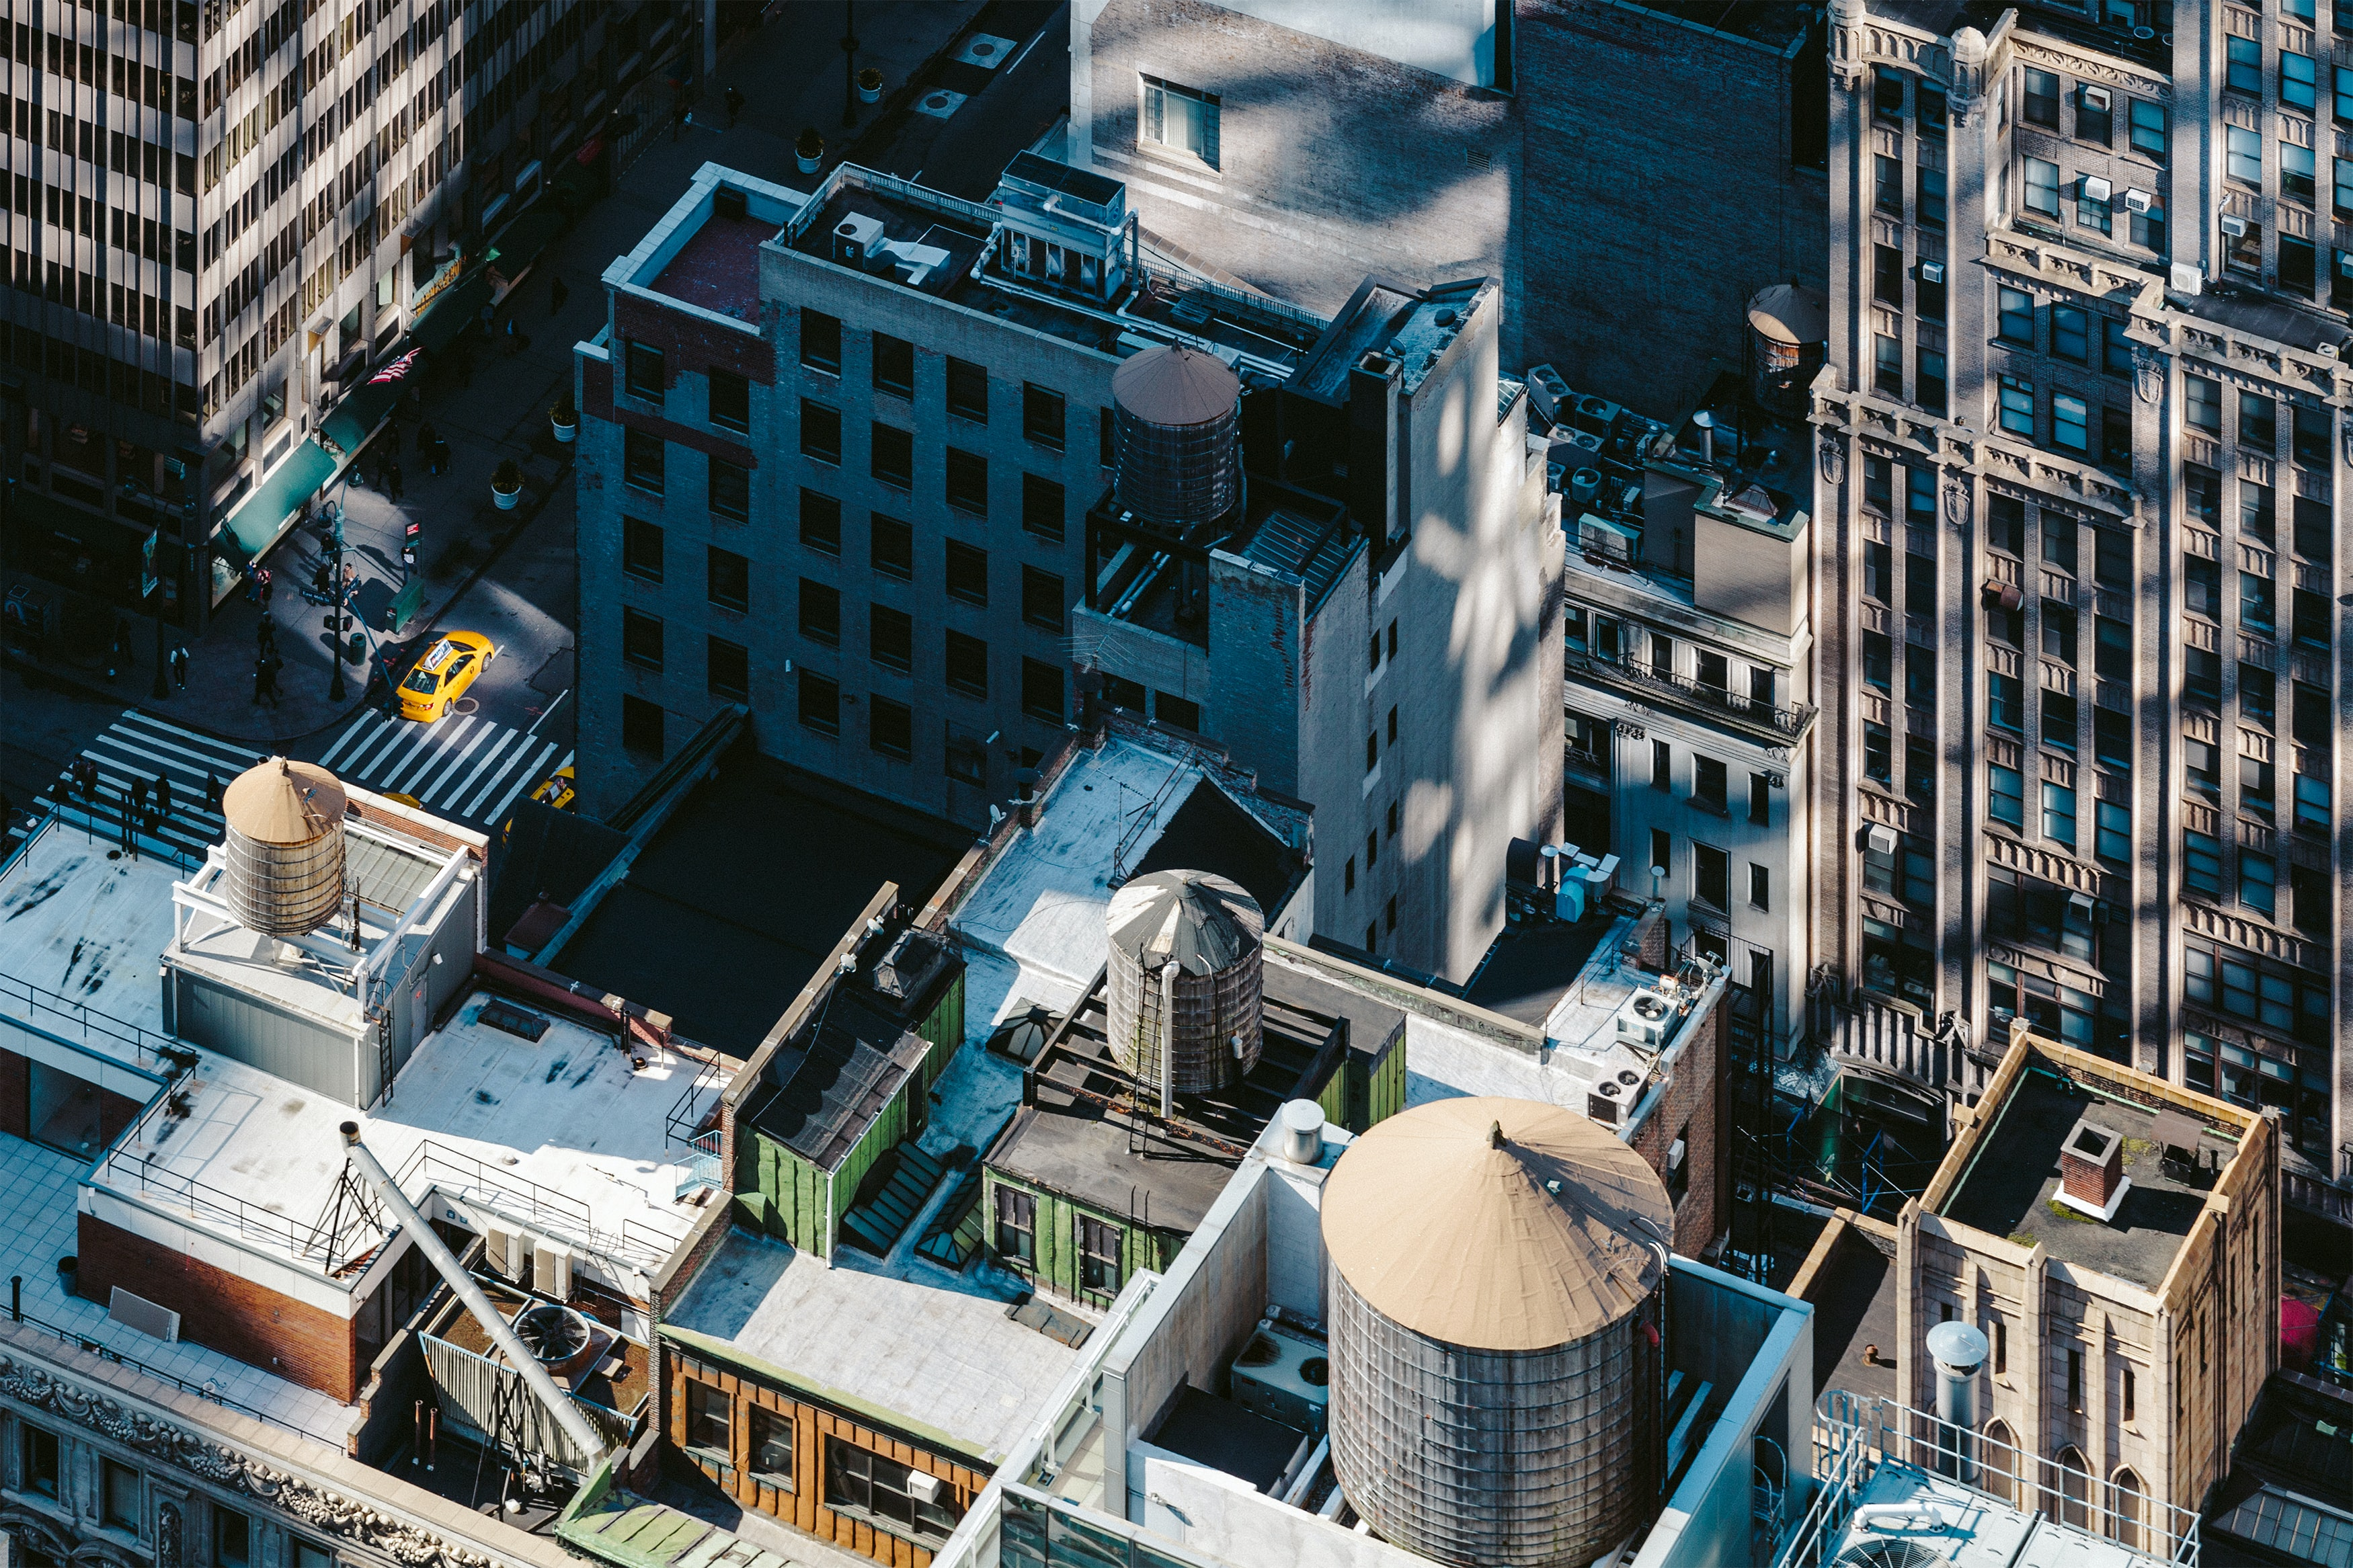 A high view of apartment building roofs in Manhattan